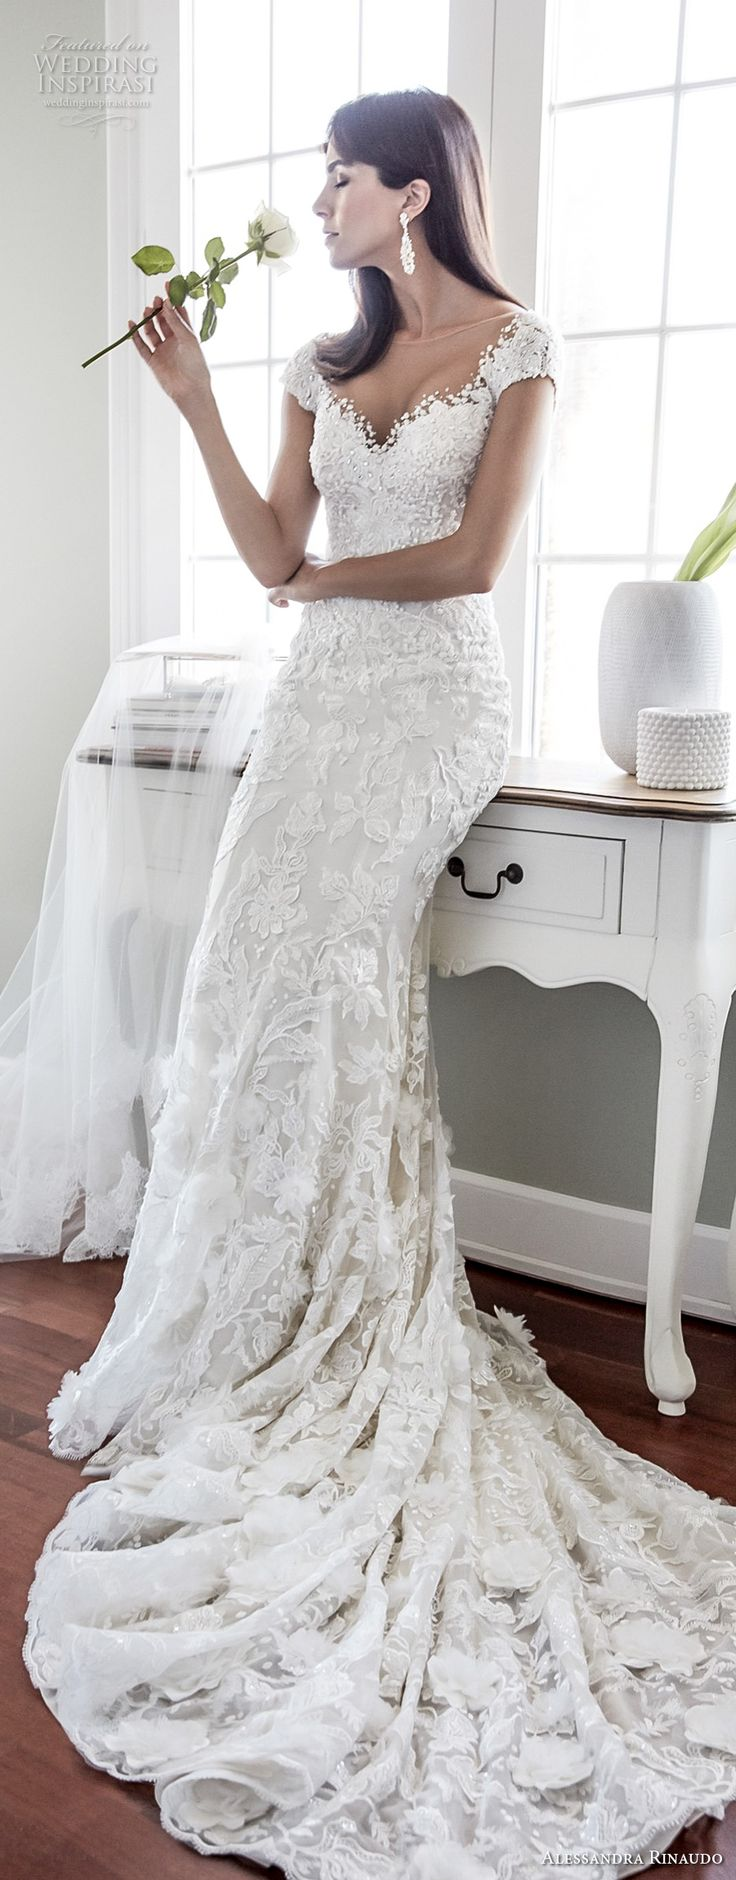 3953 best Going to the chapel! images on Pinterest | Wedding frocks ...